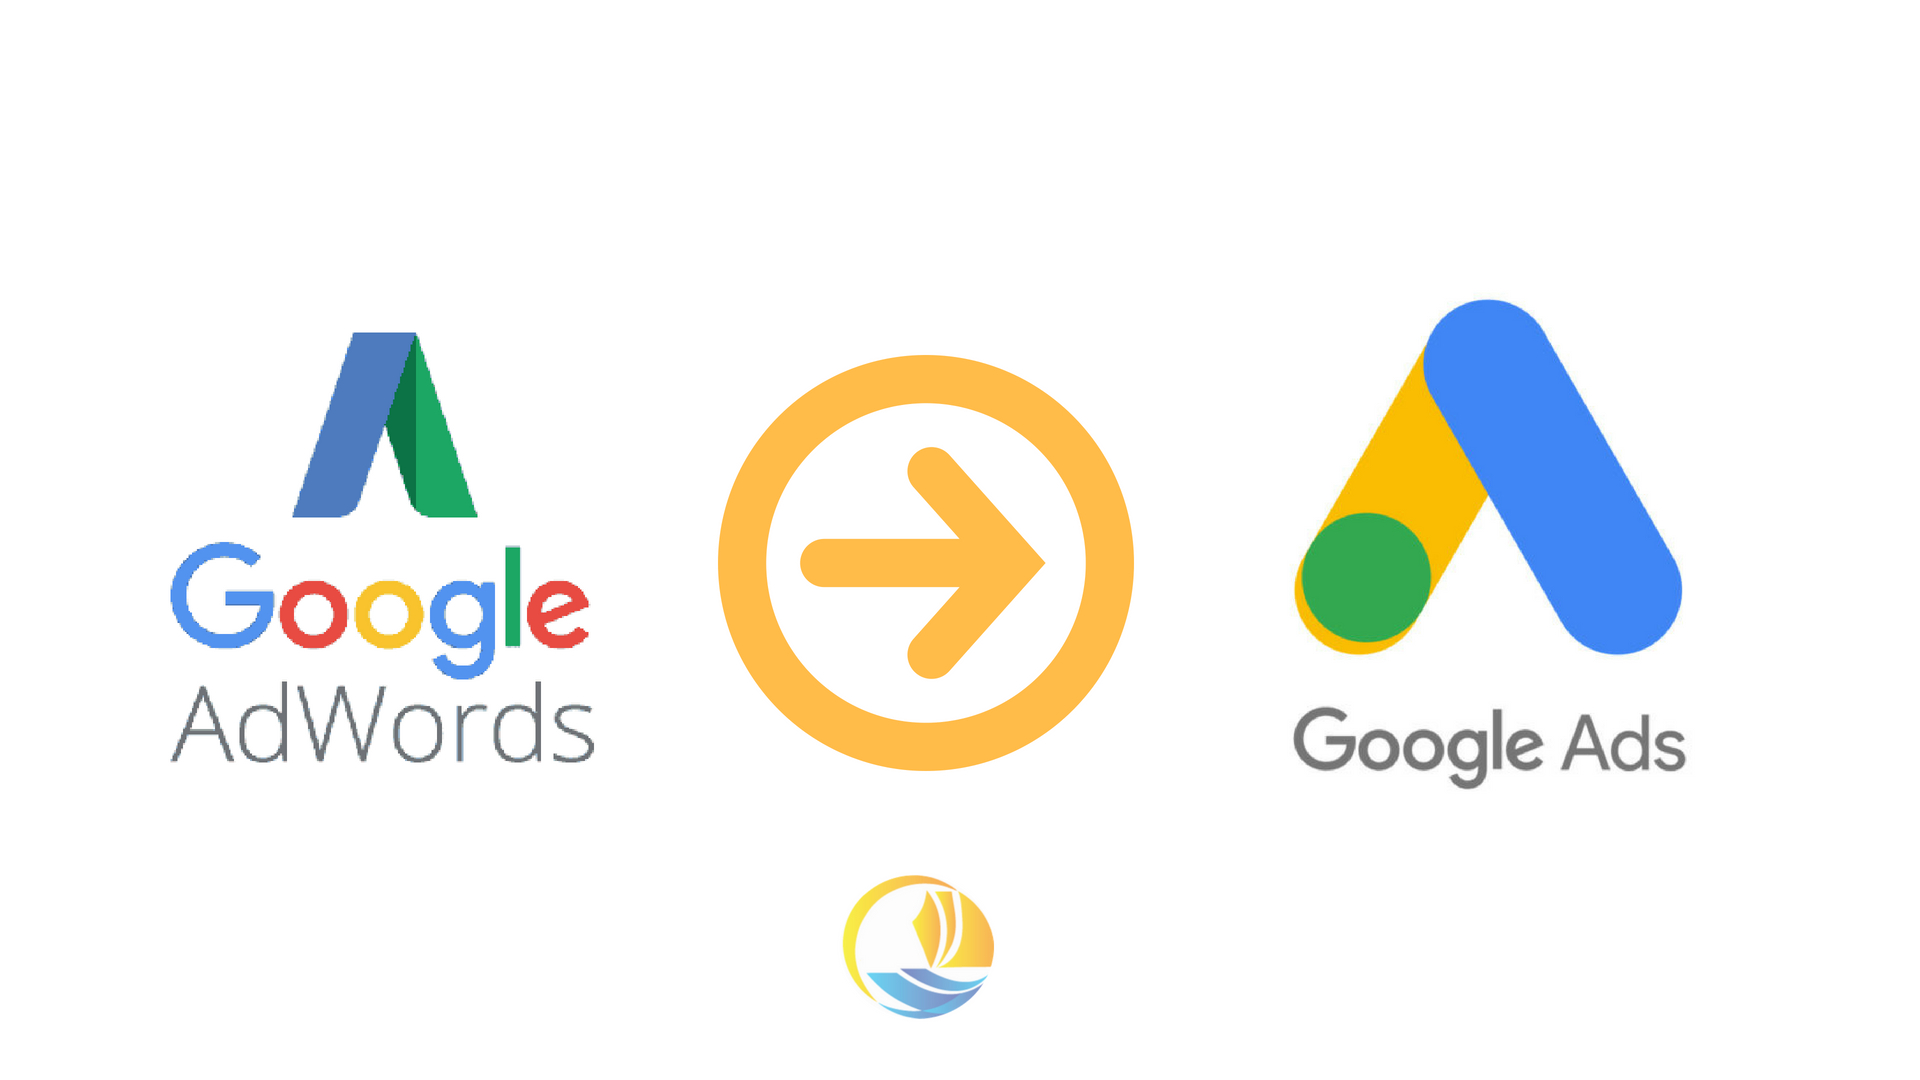 Google Adwords to Google Ads Everything you need to know